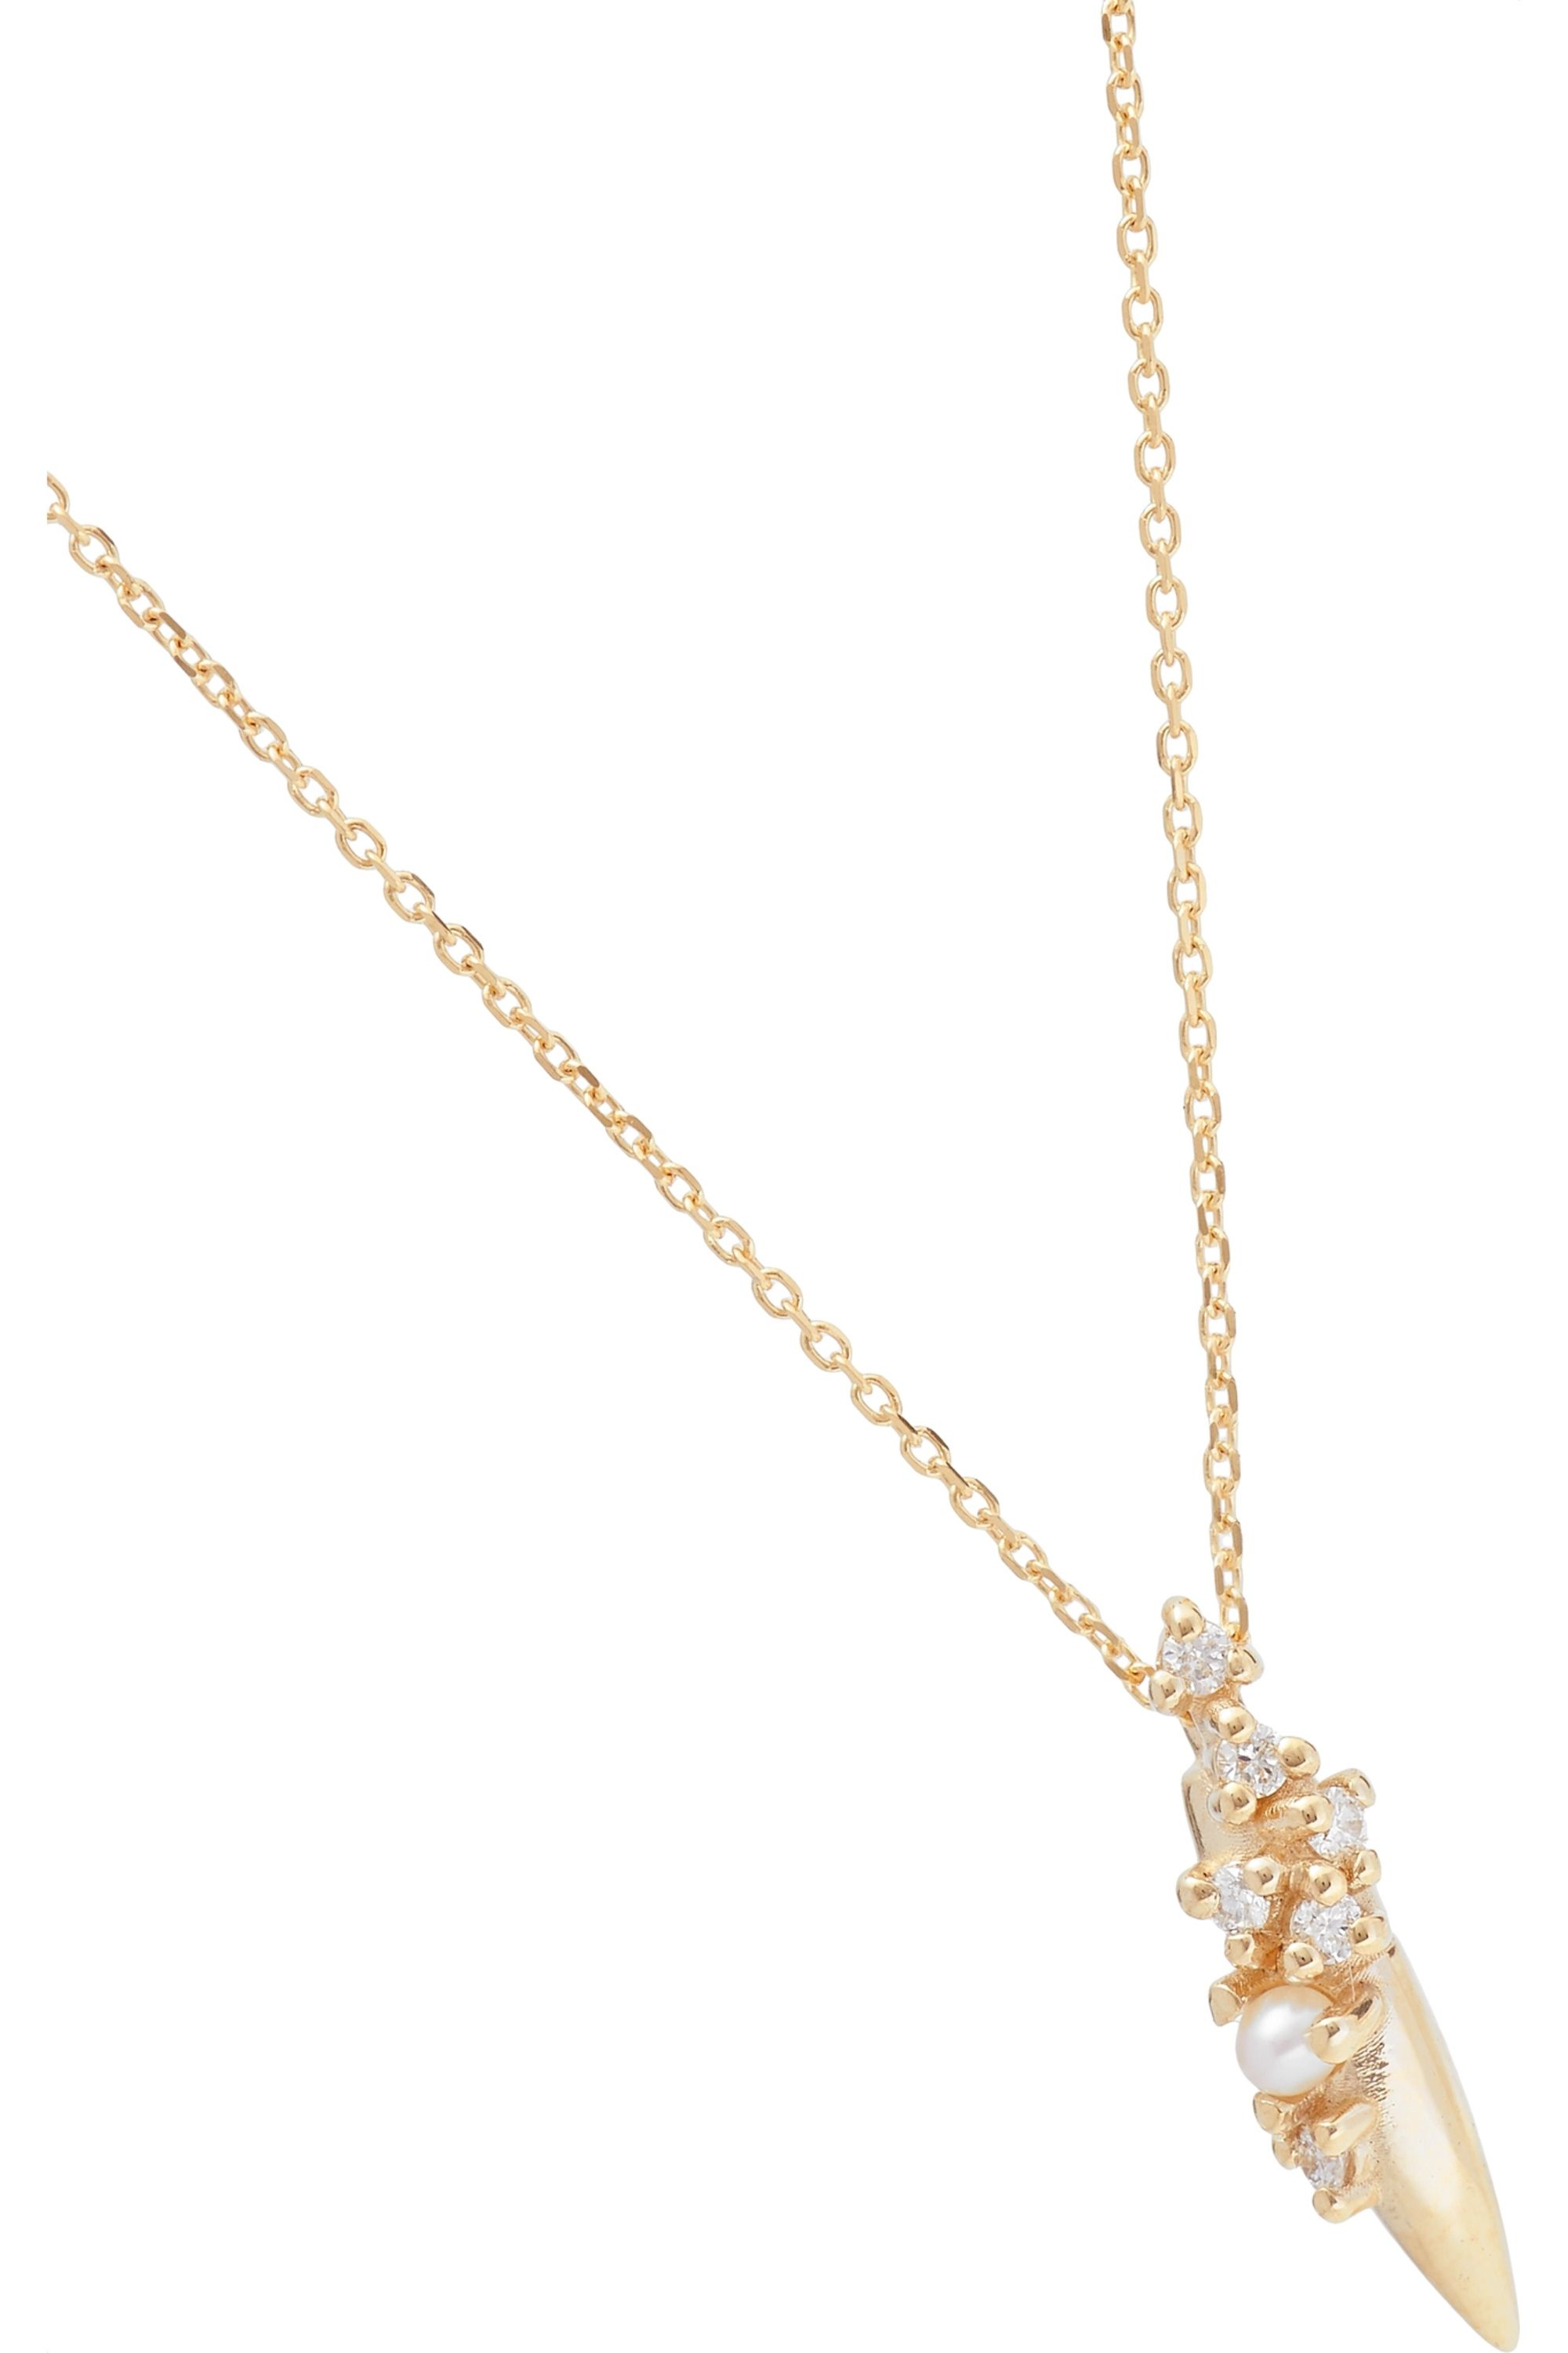 SARAH & SEBASTIAN Coral Relic 10-karat gold, diamond and pearl necklace